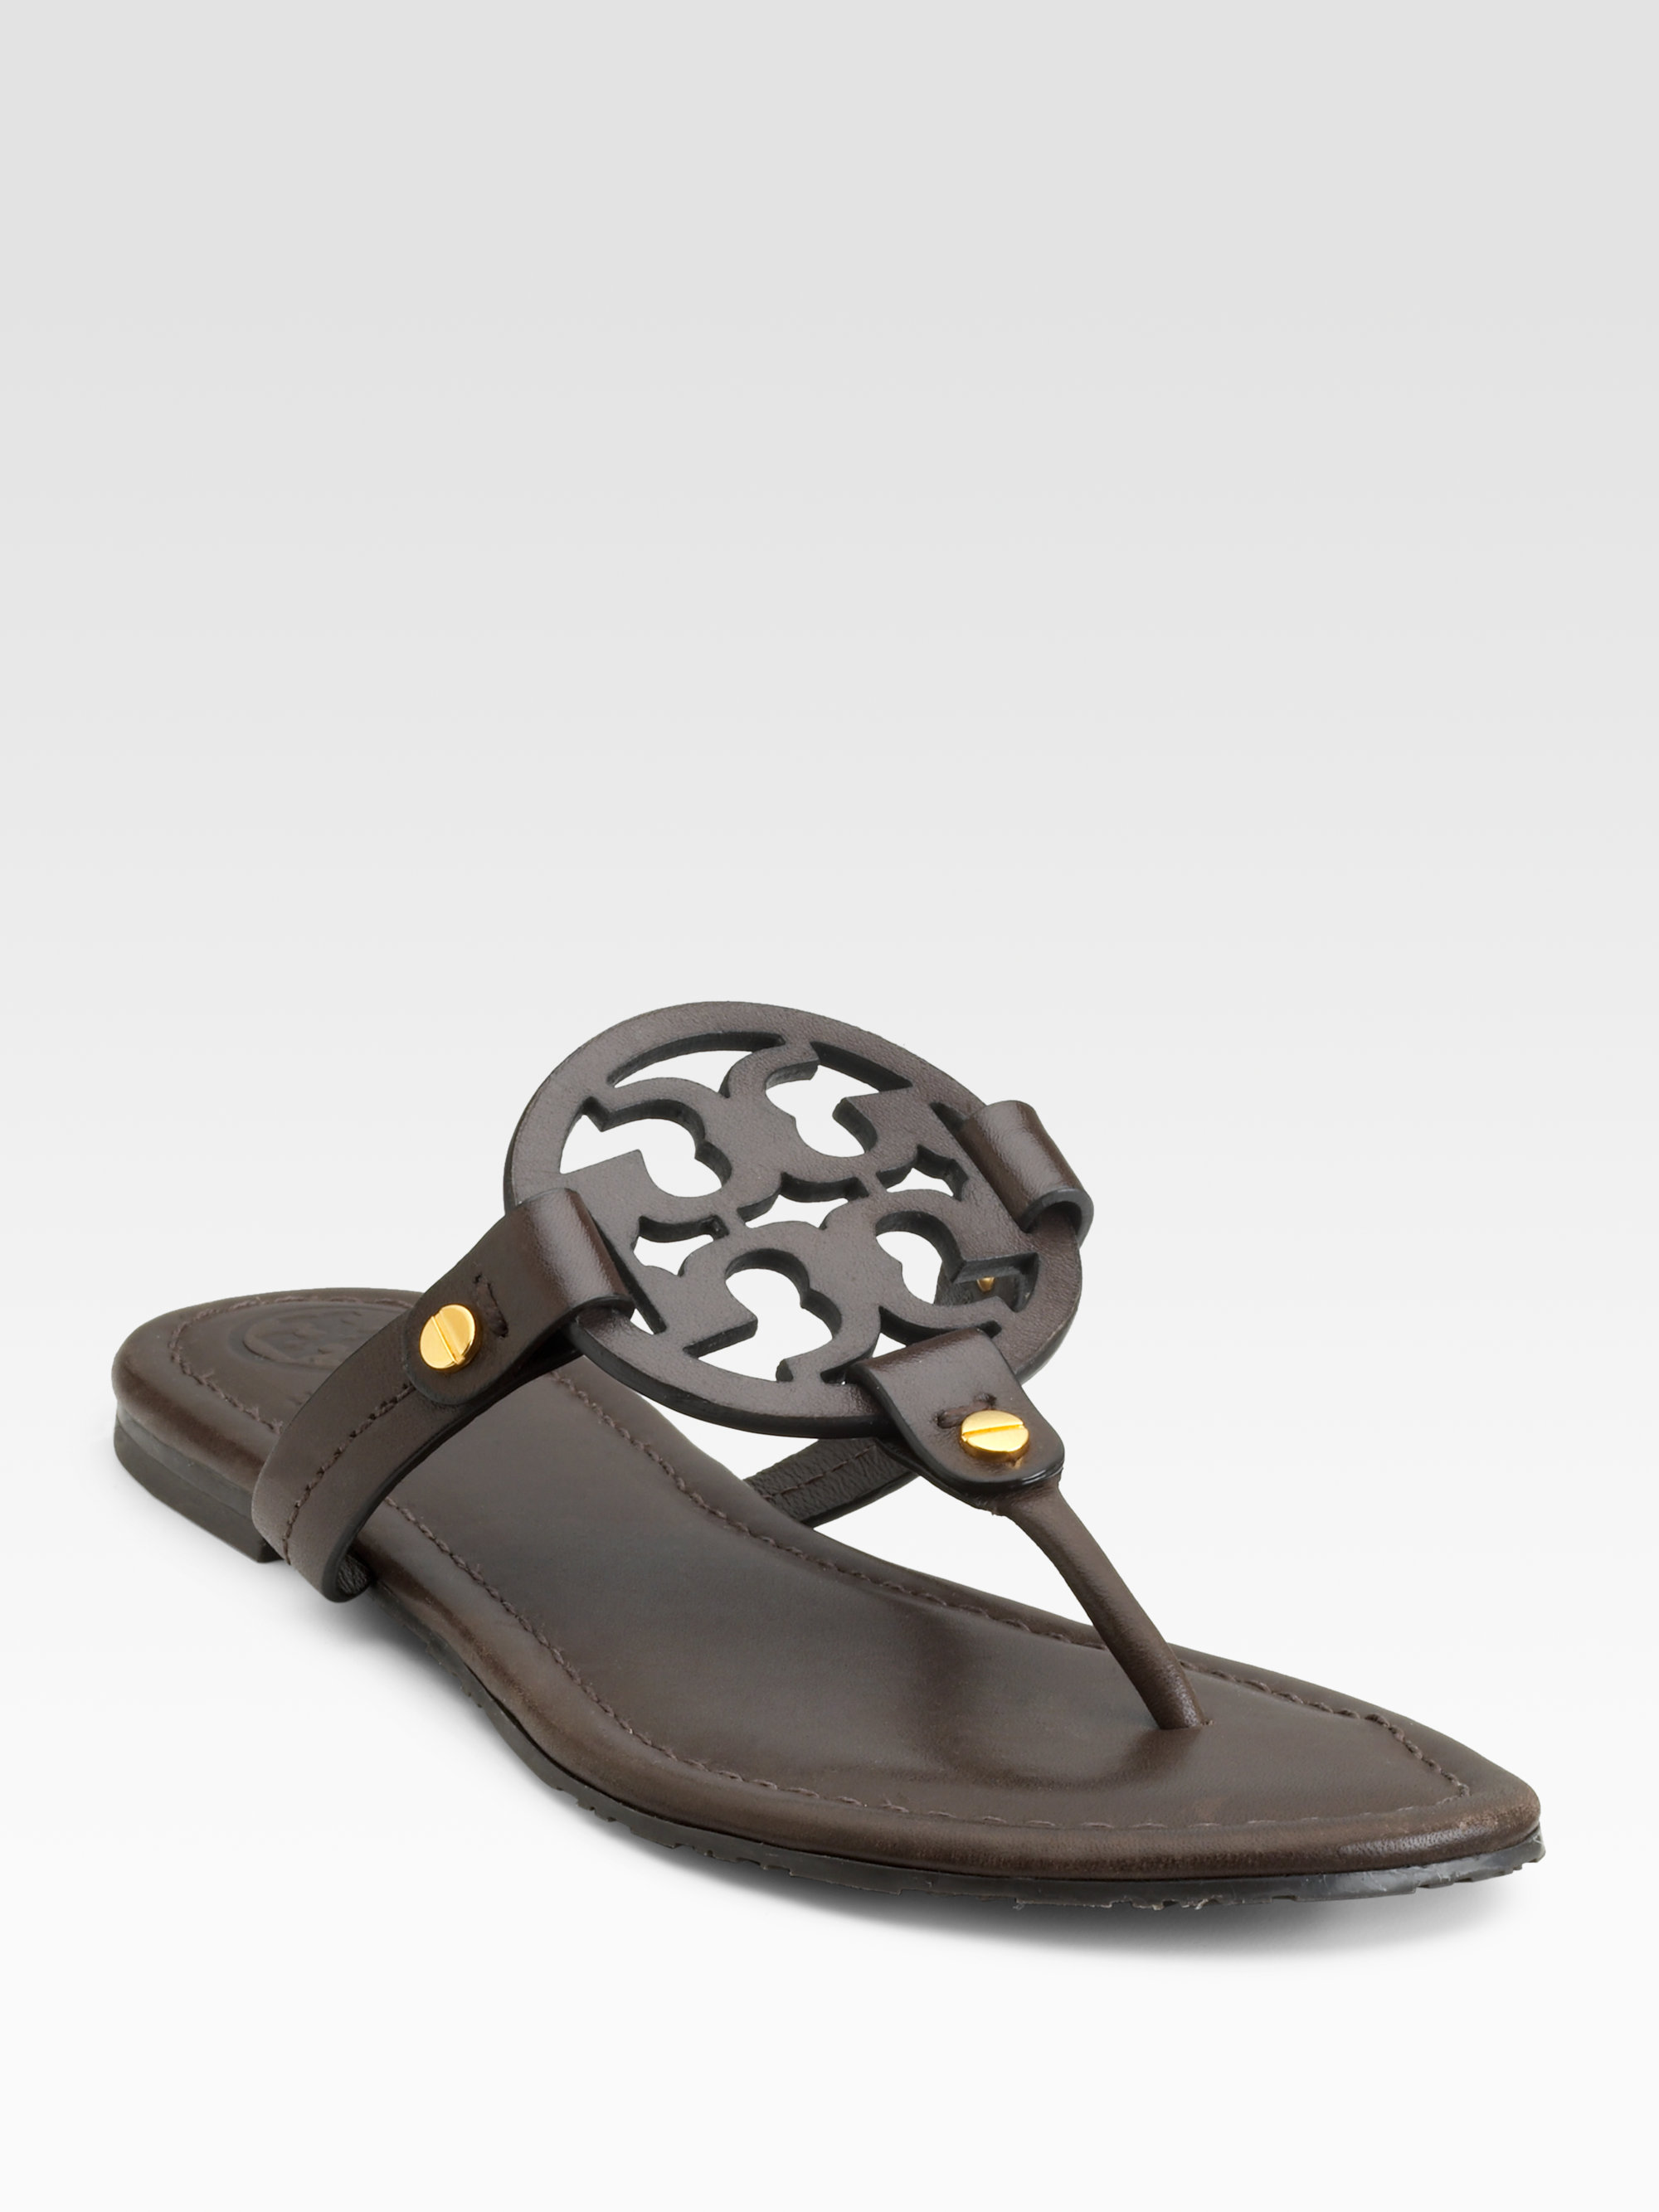 367563ce2a43 Lyst - Tory Burch Miller Thong Sandals in Brown